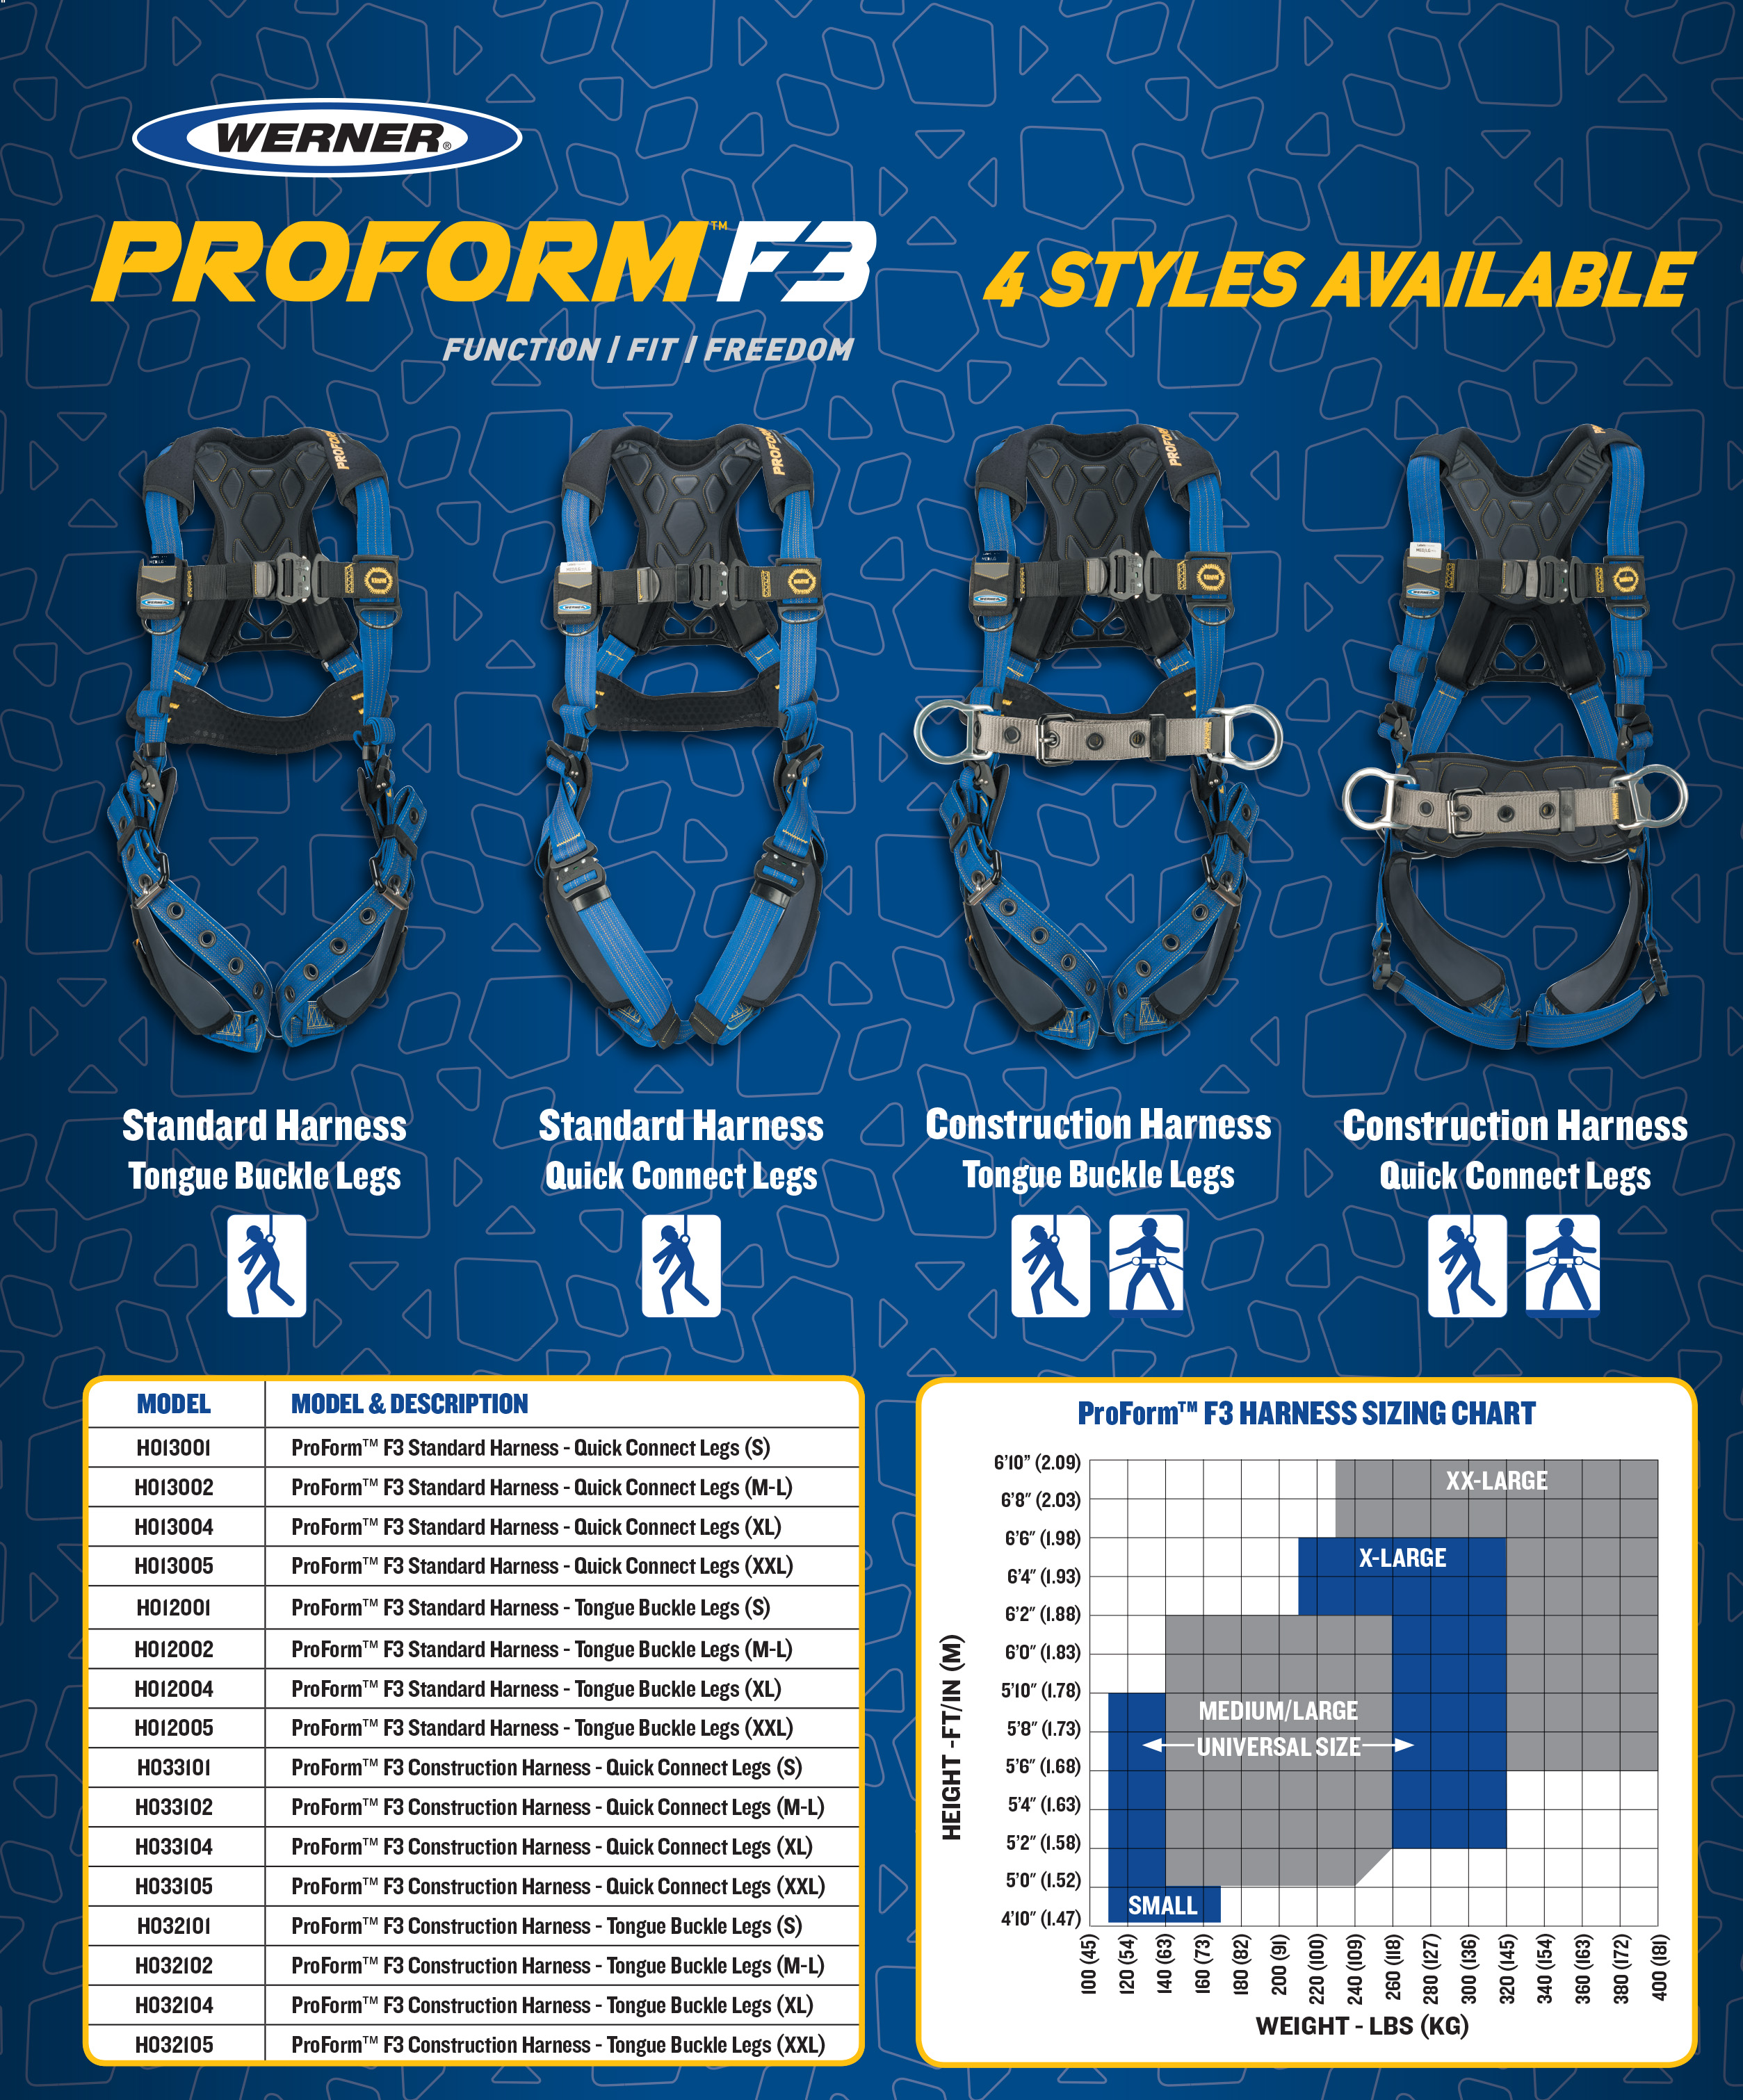 gm7502-proform-brochure-hires-pdf-a.jpg